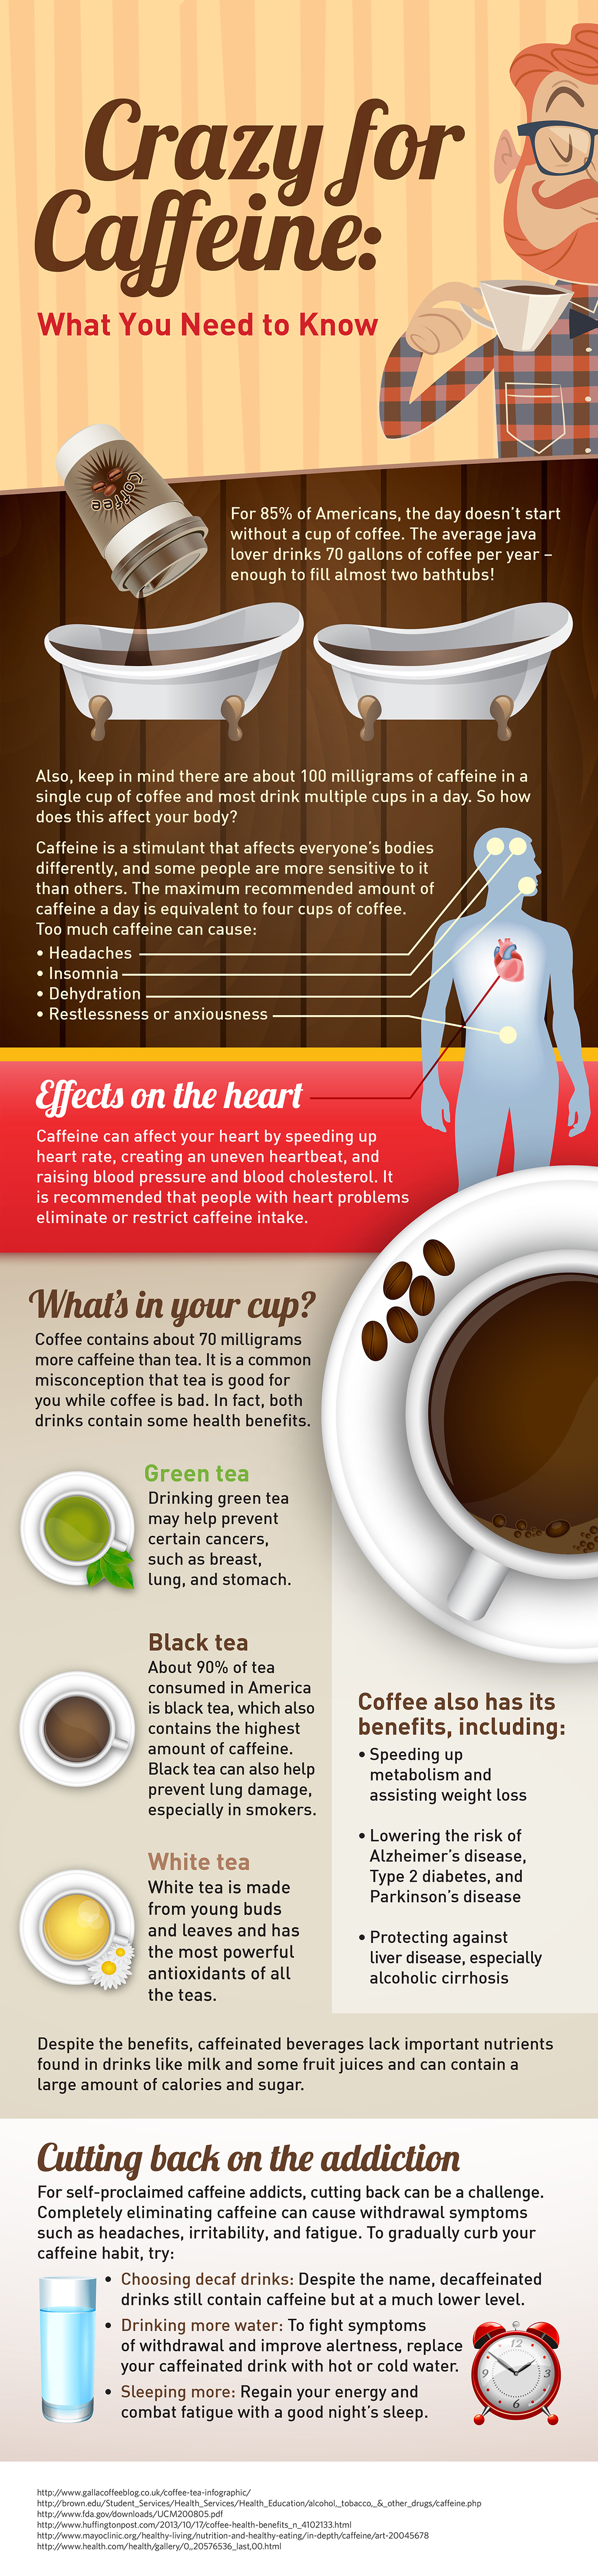 Infographic: Caffeine Facts and Statistics